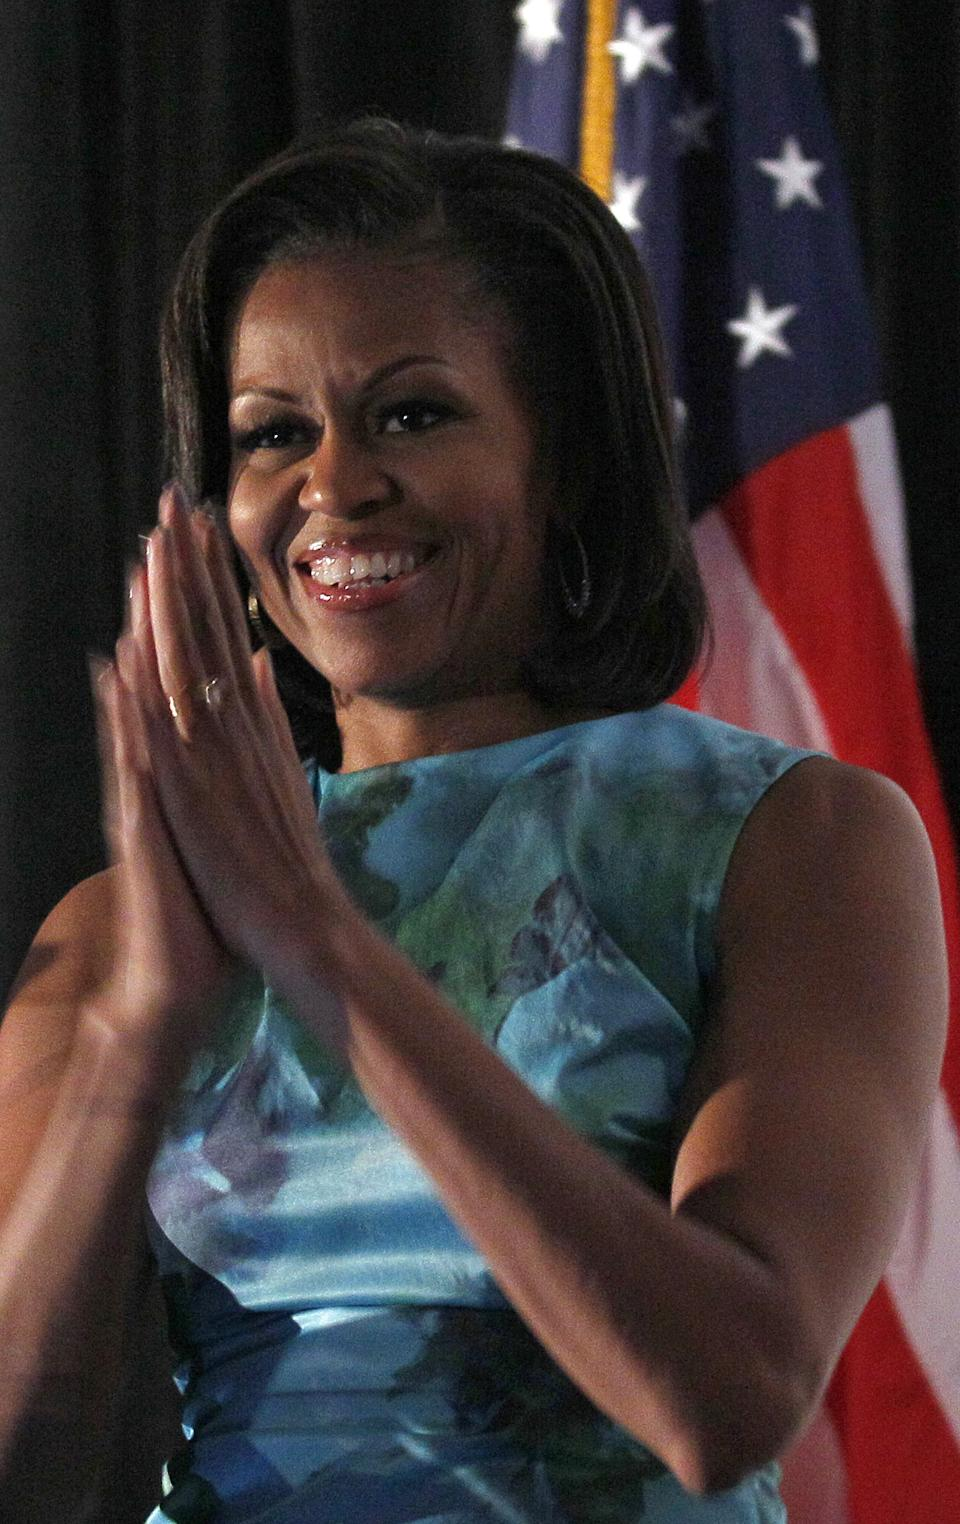 First lady Michelle Obama applauds while speaking during a Human Rights Campaign luncheon while attending the Democratic National Convention in Charlotte, N.C., Wednesday, Sept. 5, 2012. (AP Photo/Gerry Broome)